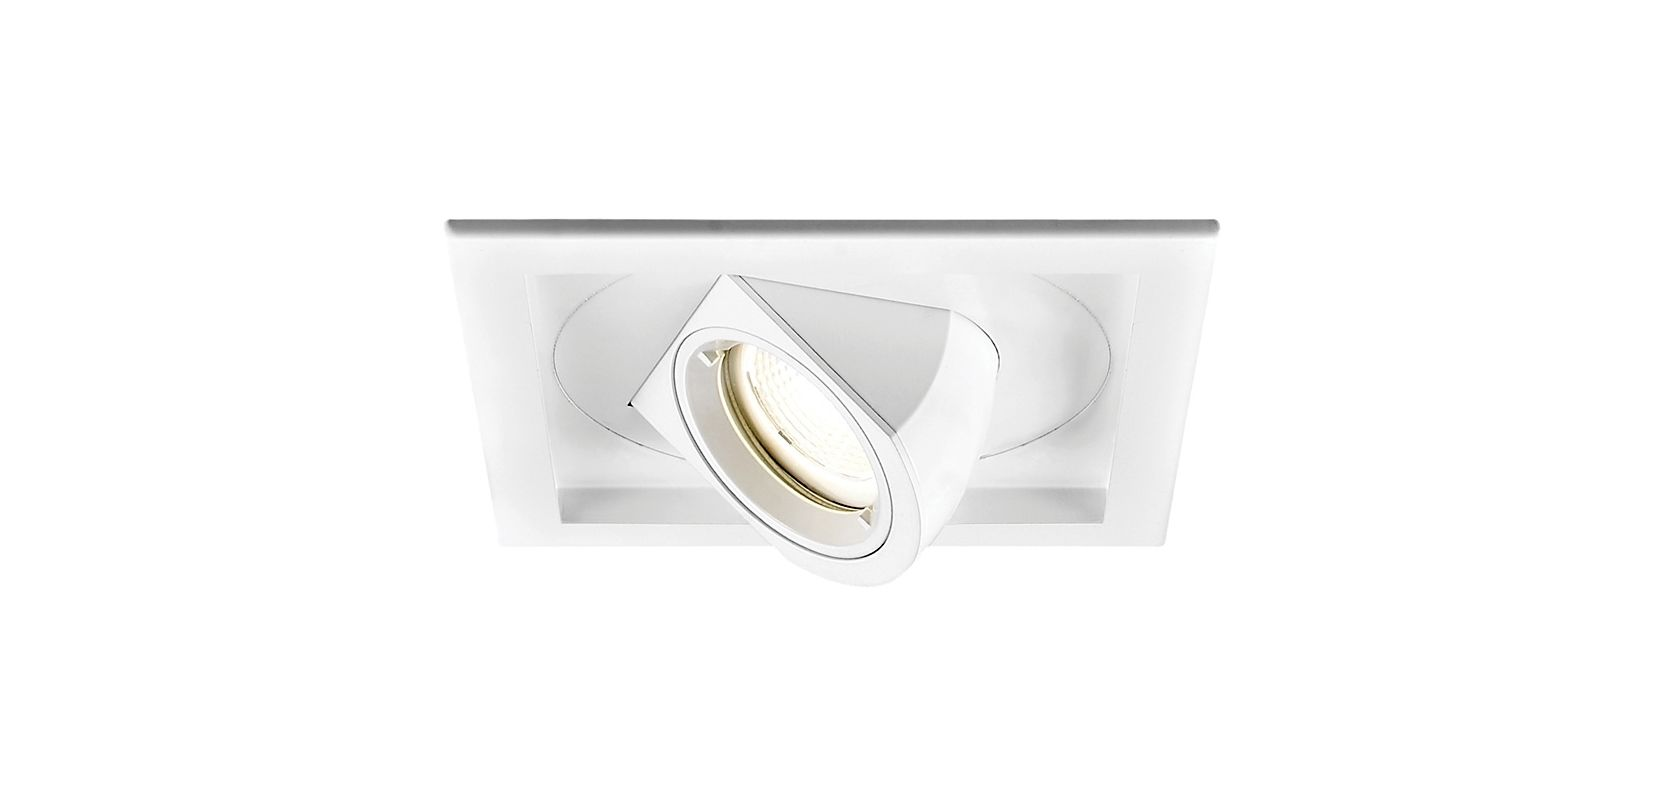 WAC Lighting MT-5LD125H Multiple Spot LED Recessed Light Housing for